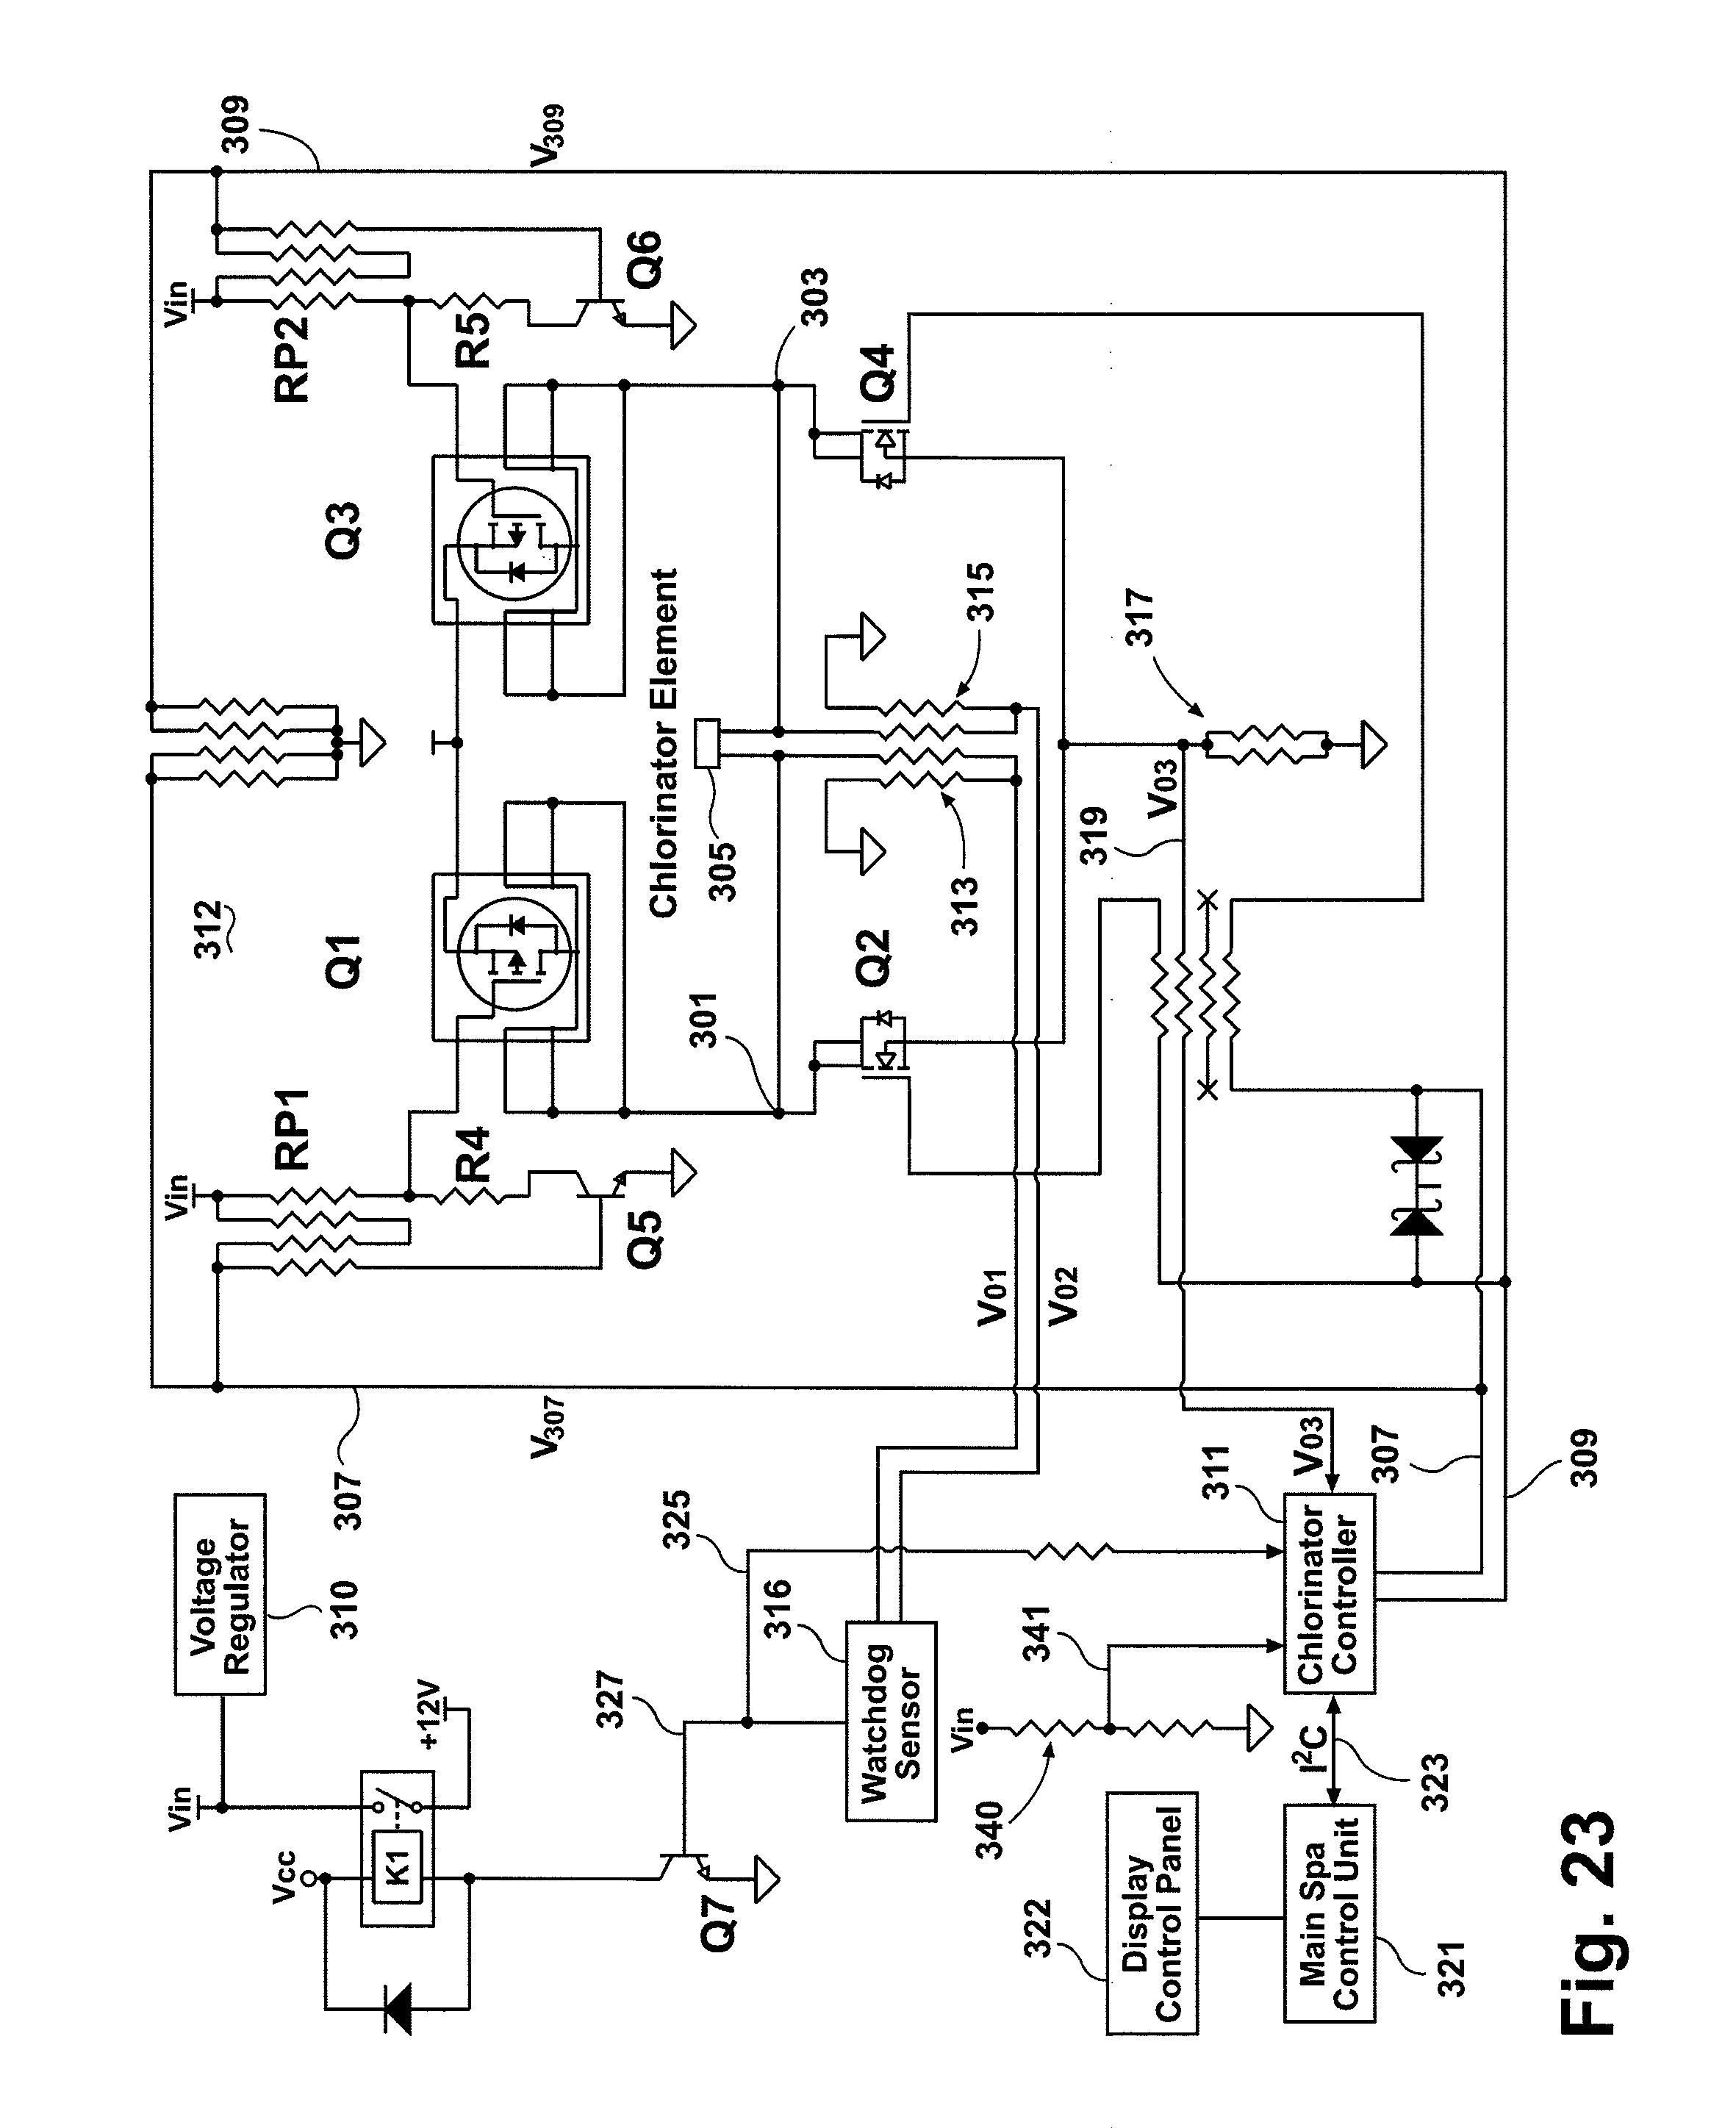 Patent Us8273254 Spa Water Sanitizing System Google Dimension One